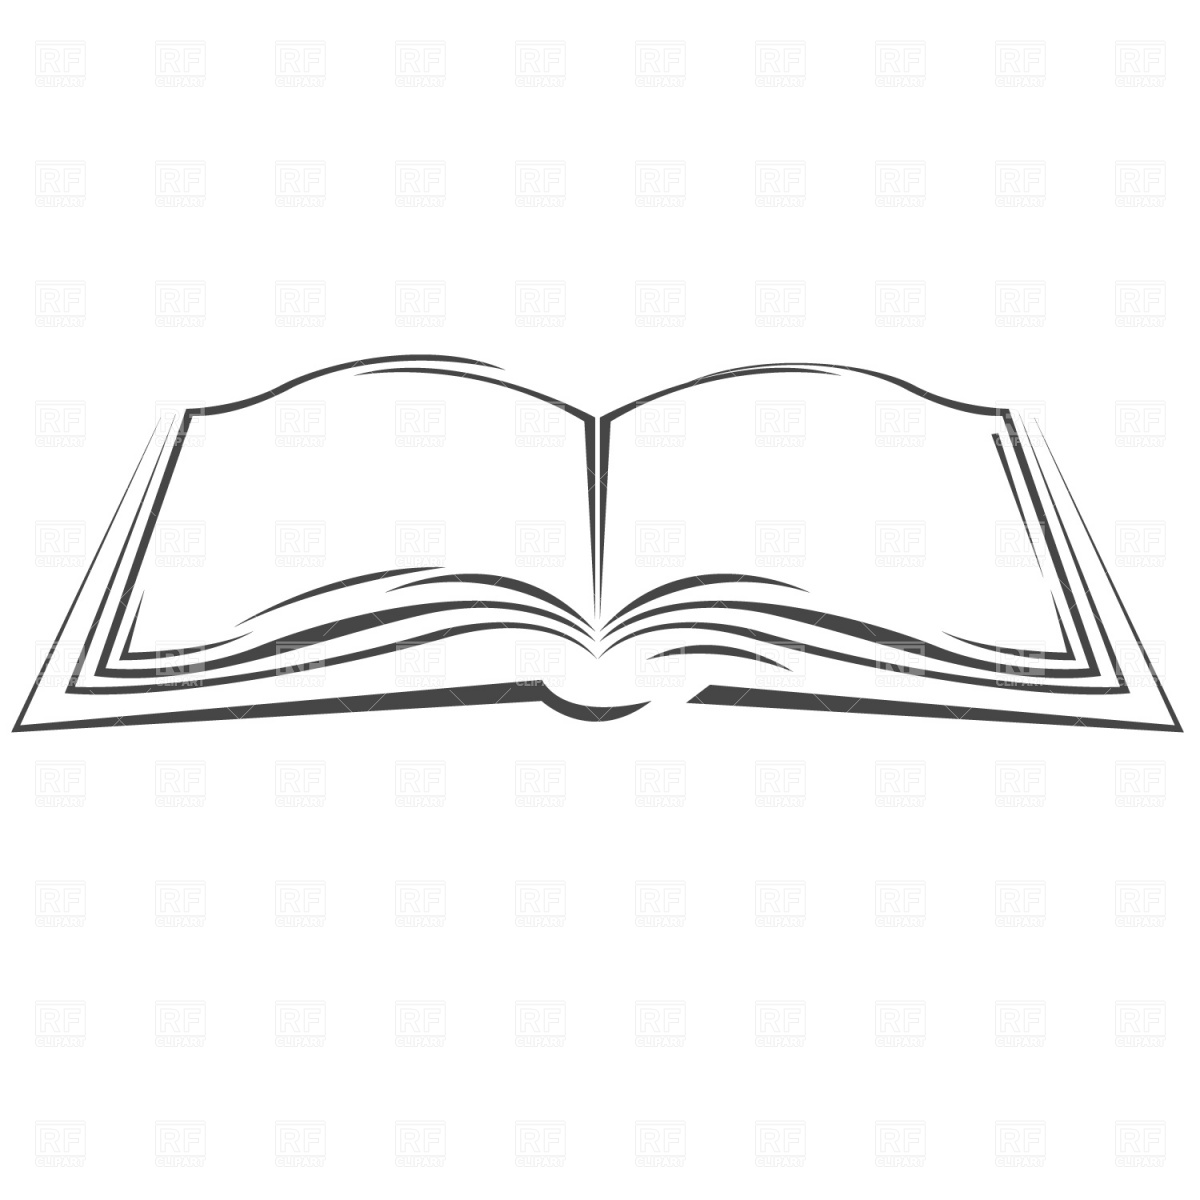 Open Book Vector - Symbolic open book Vector Image of Objects © prague #870 – RFclipart